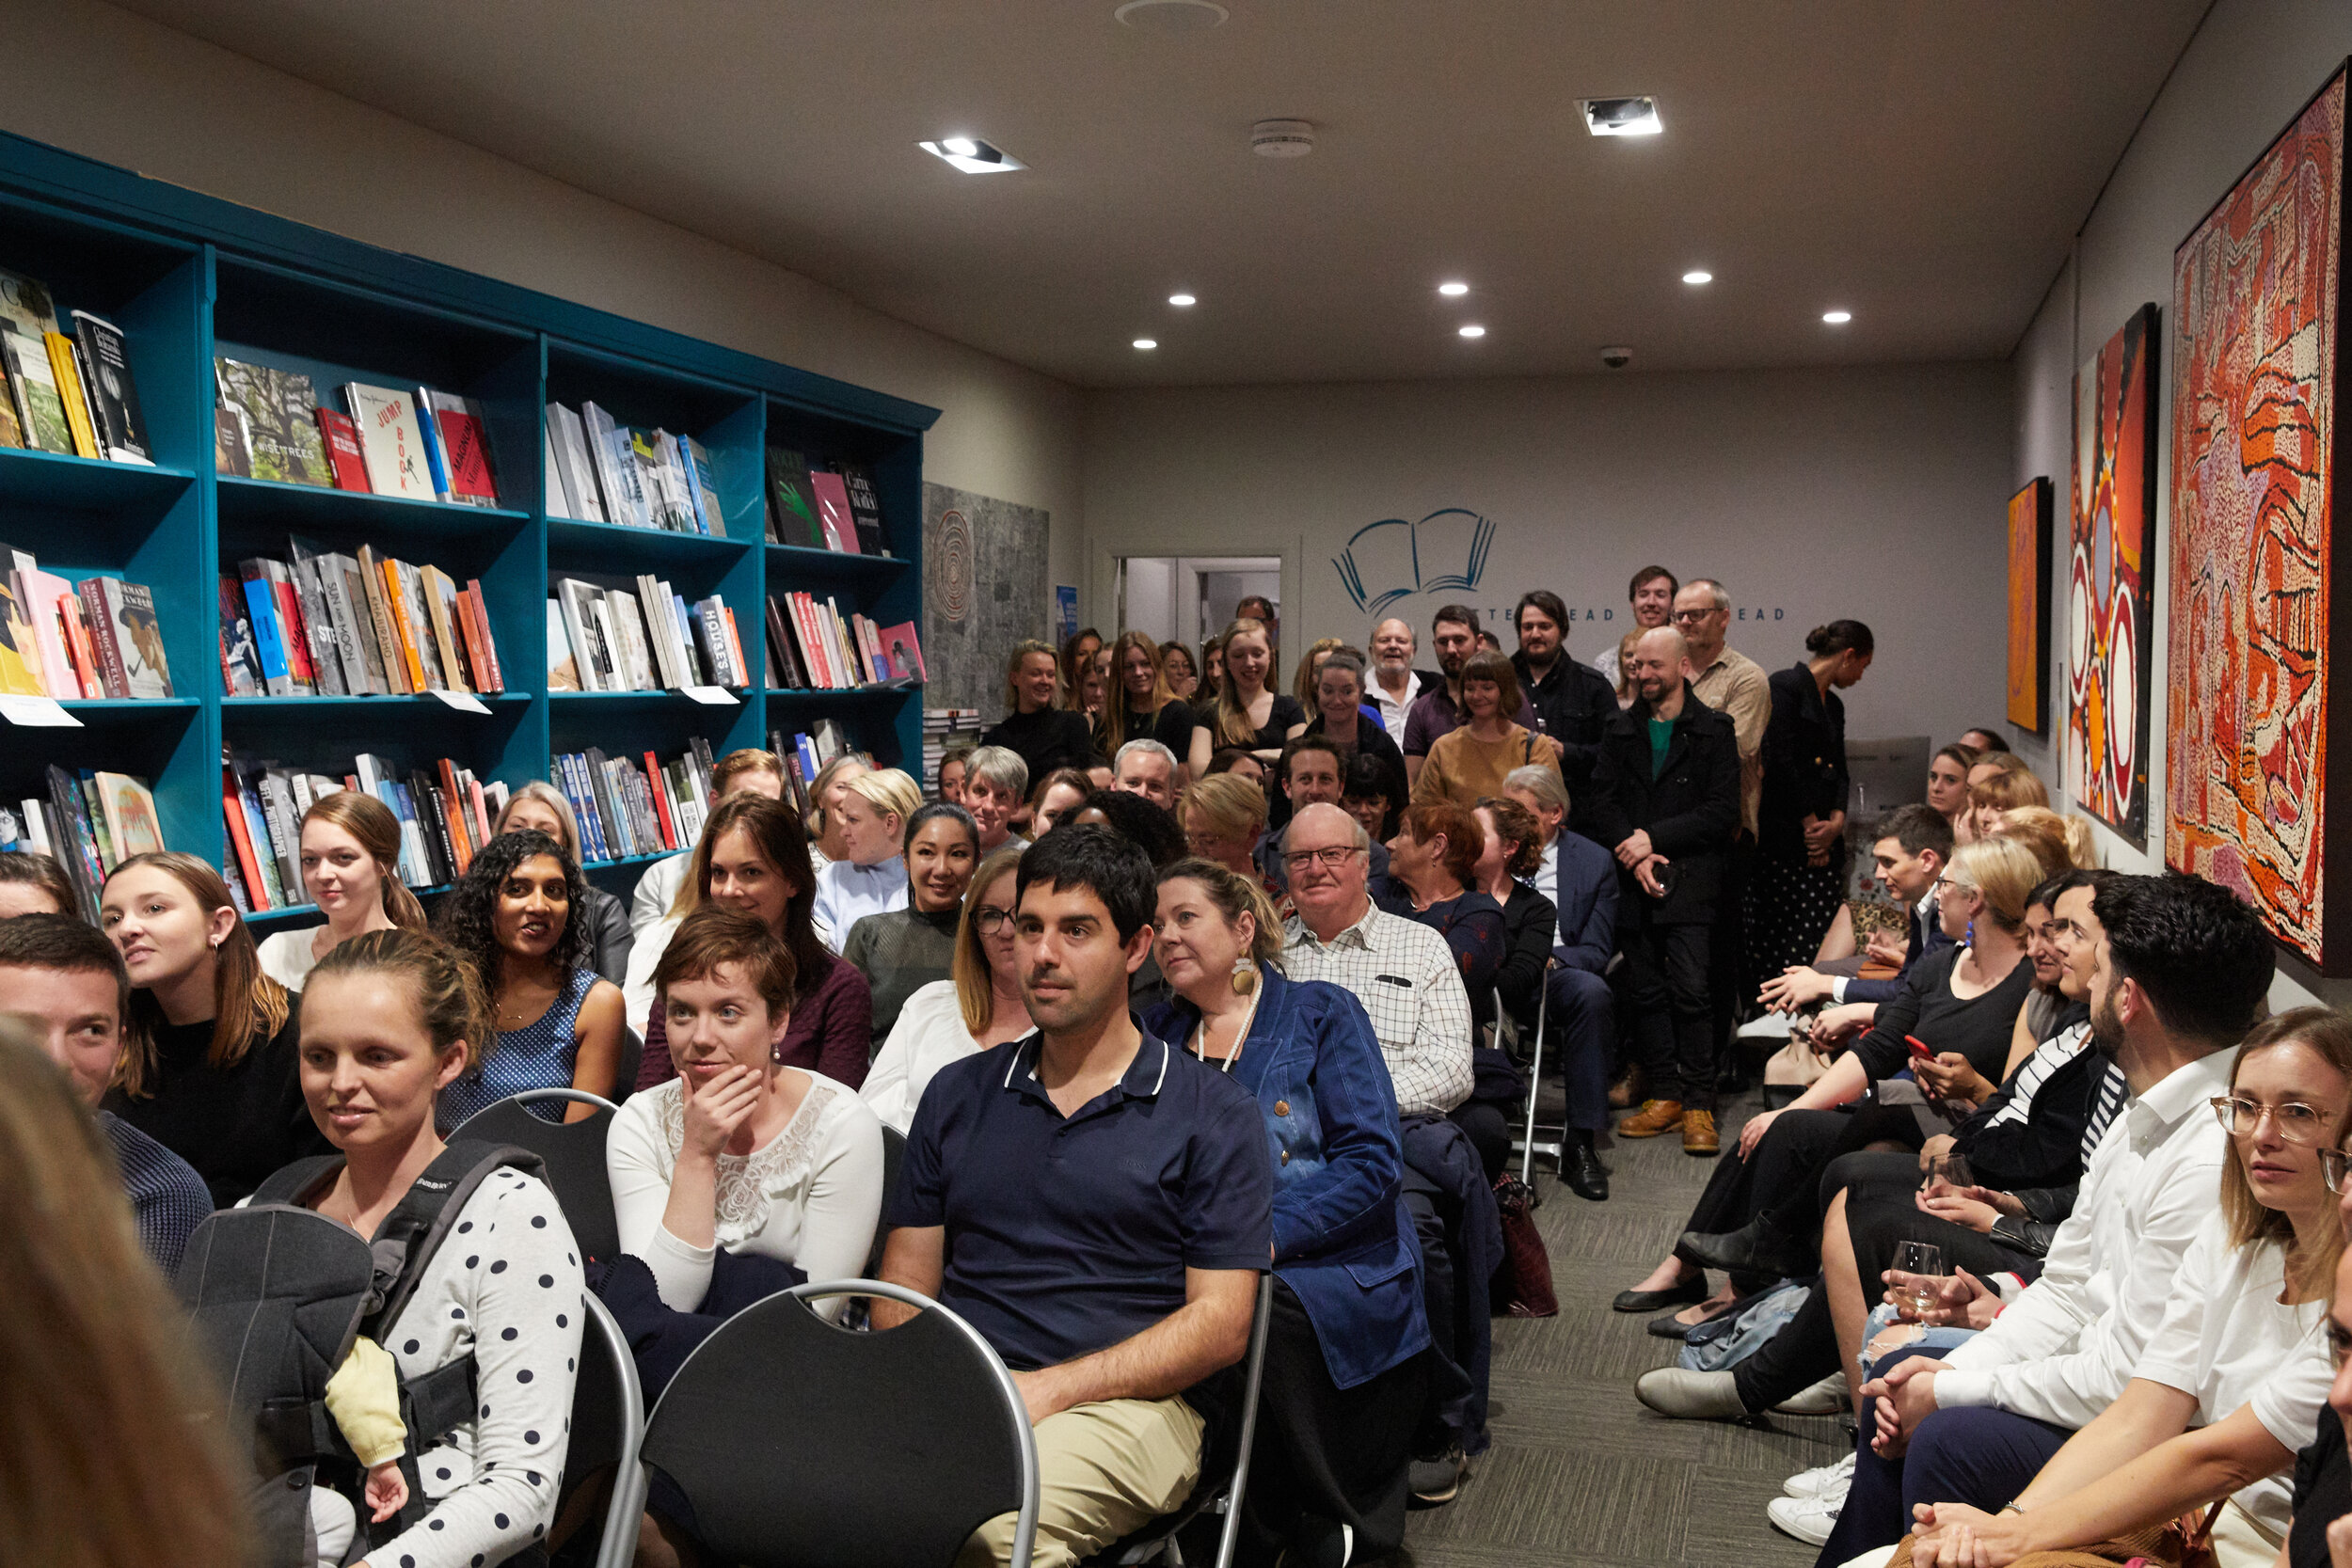 A huge crowd gathered upstairs at Better Read Than Dead